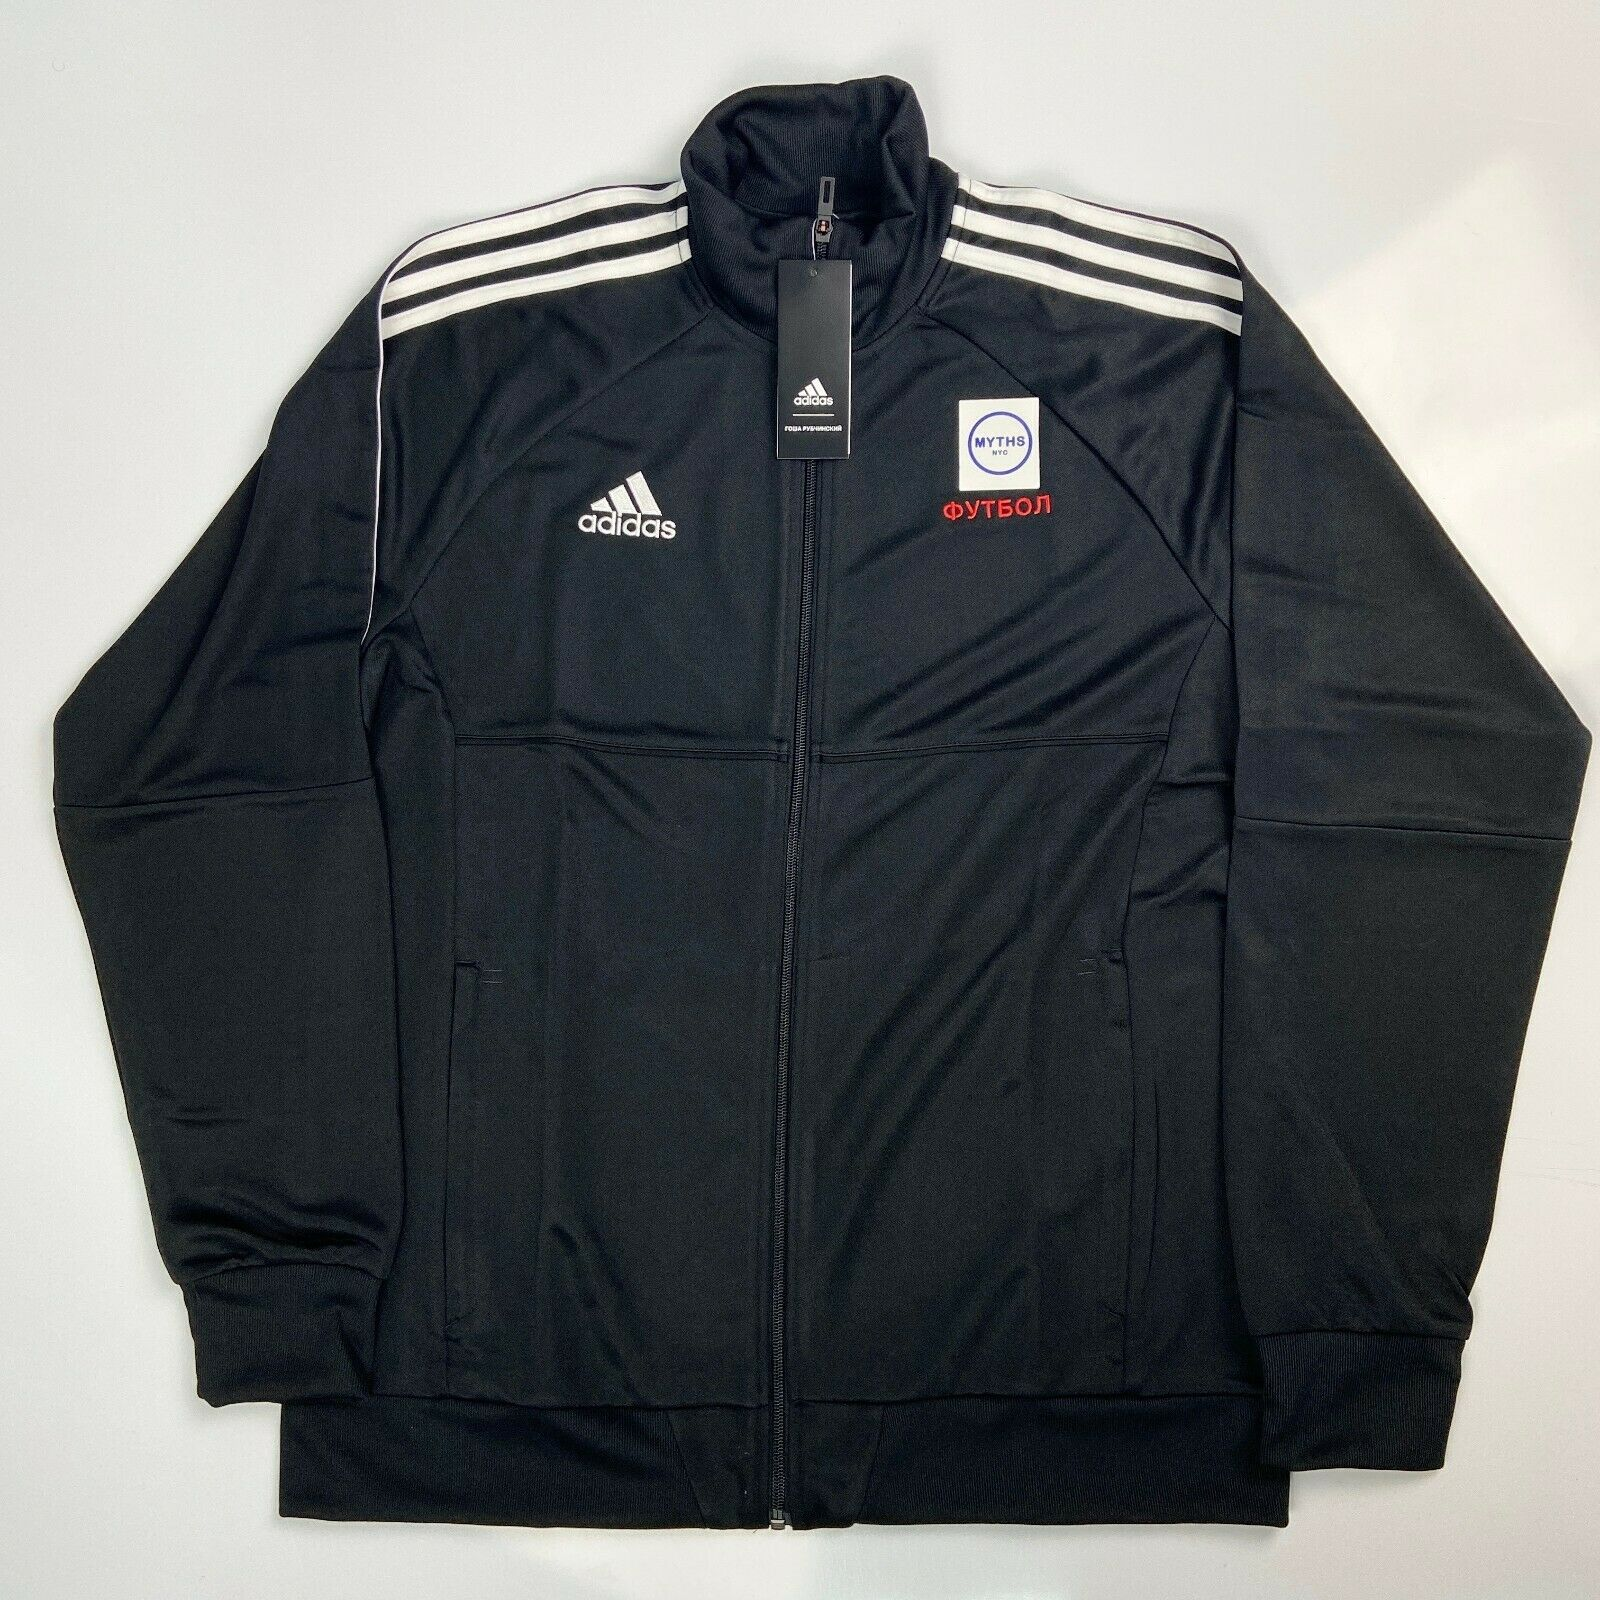 interfaccia Collana Conservazione  Gosha Rubchinskiy X Adidas Track Jacket for sale online | eBay